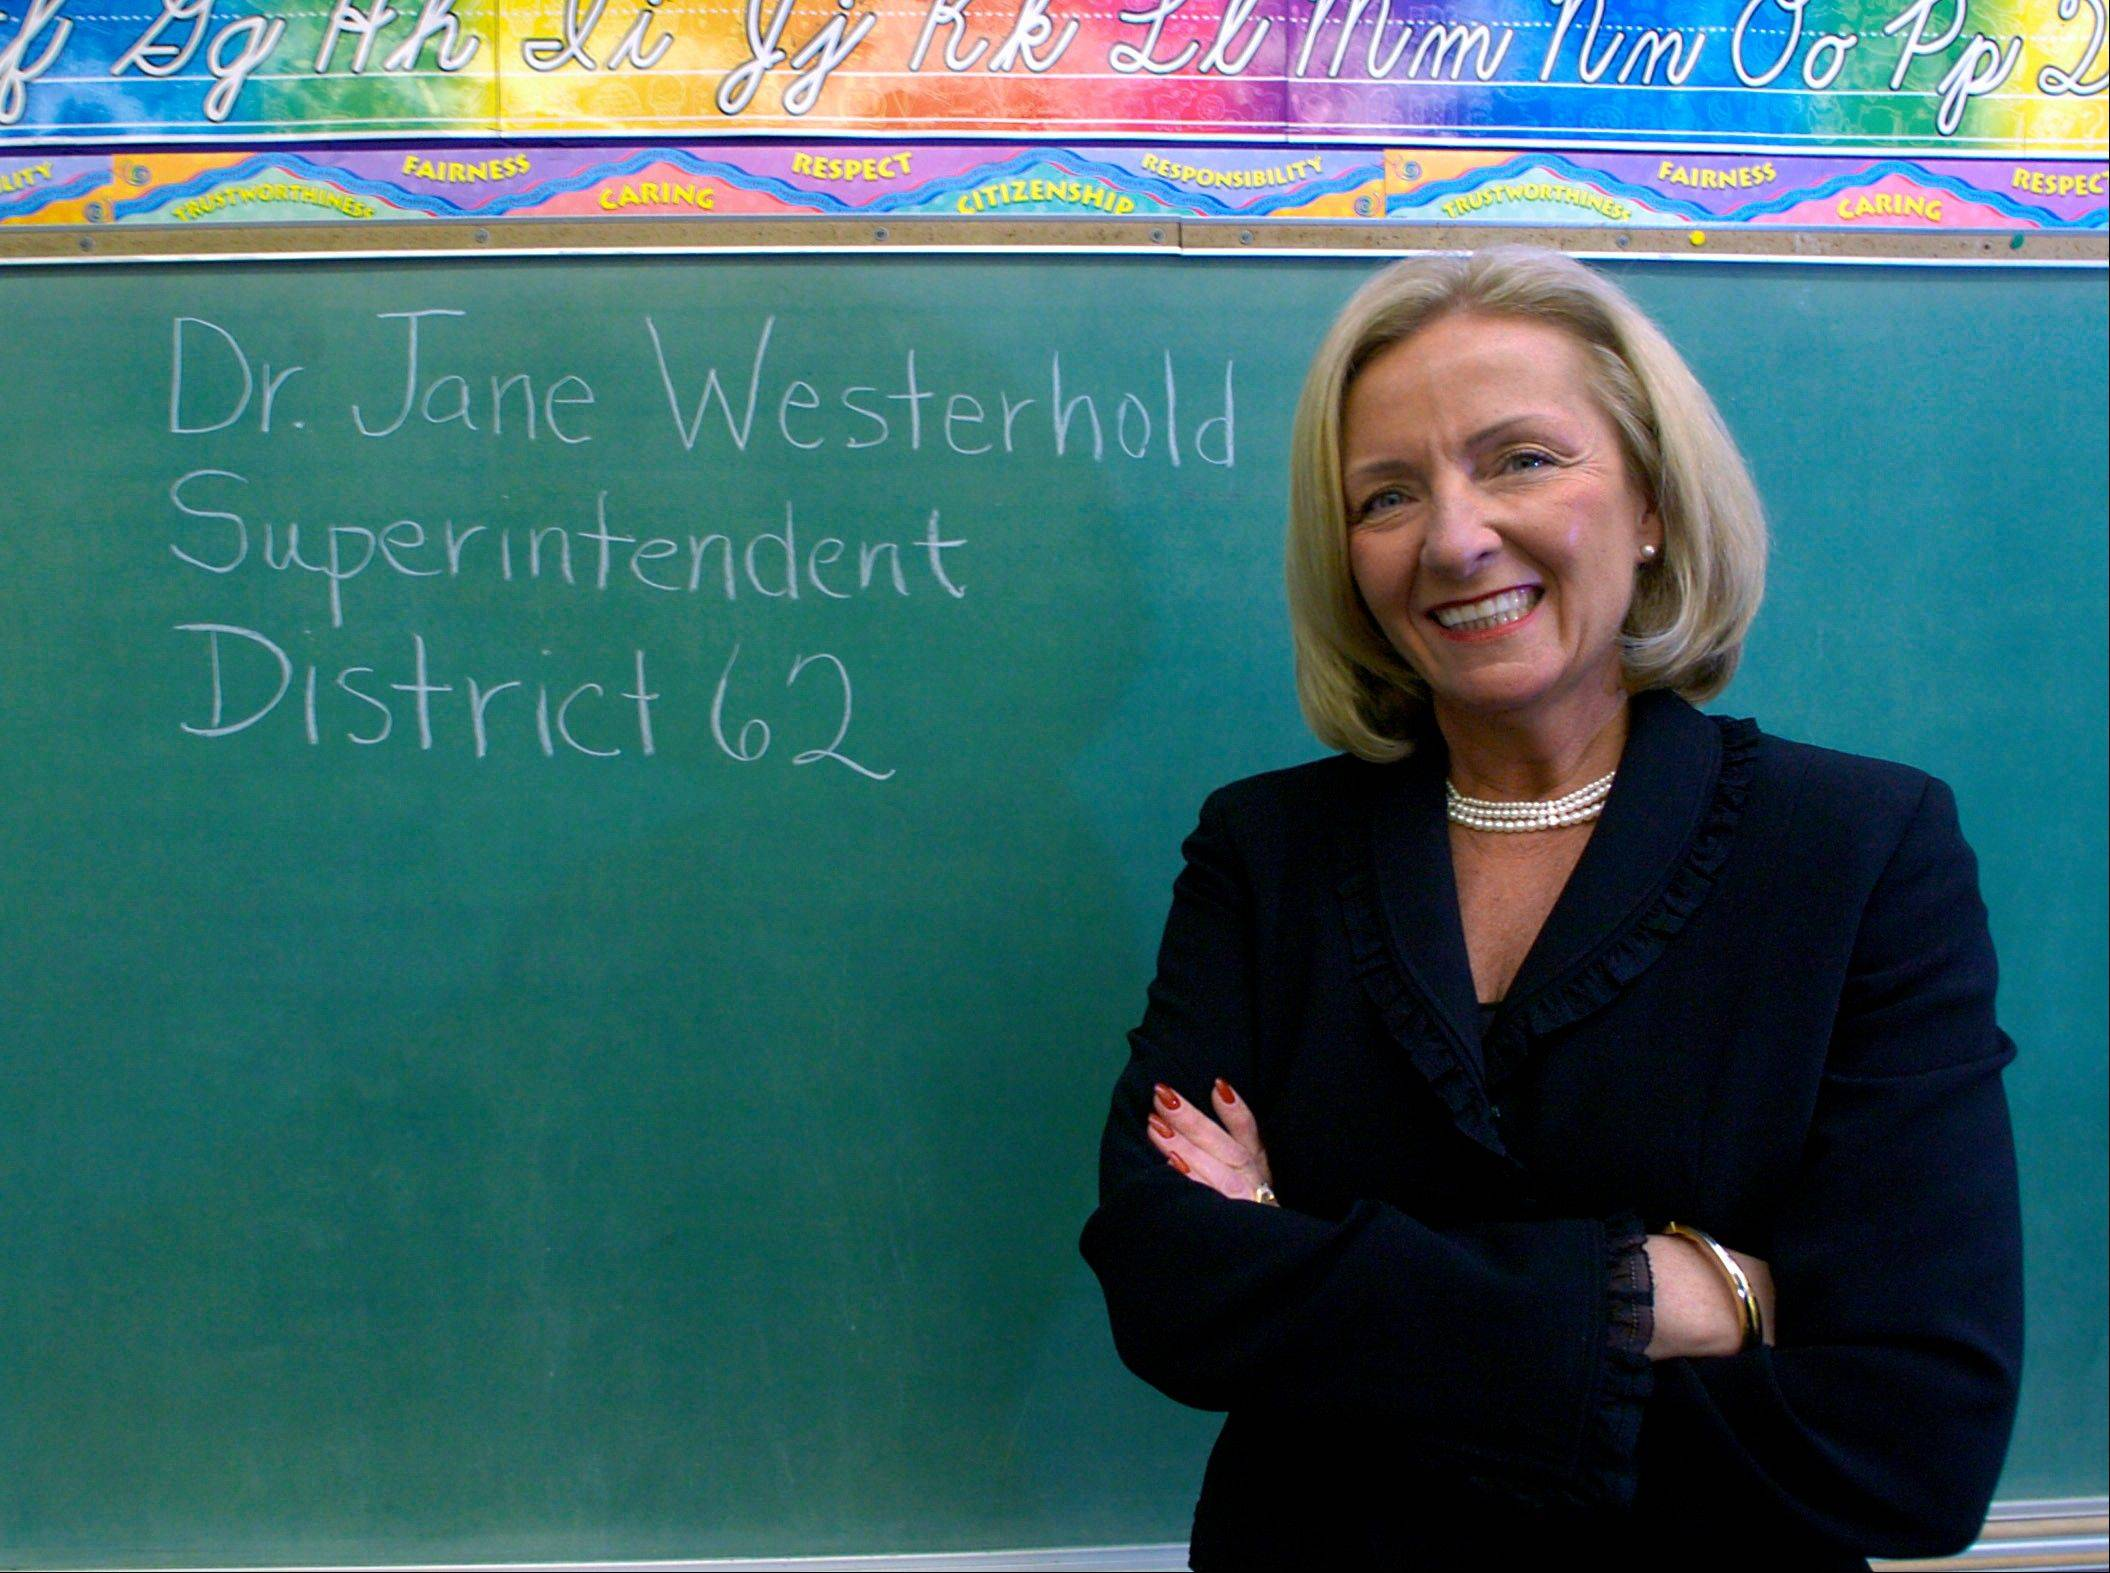 Des Plaines Elementary District 62 Superintendent Jane Westerhold received the Illinois Superintendent of the Year award Sunday at the Illinois Association of School Administrators' Joint Annual Conference.